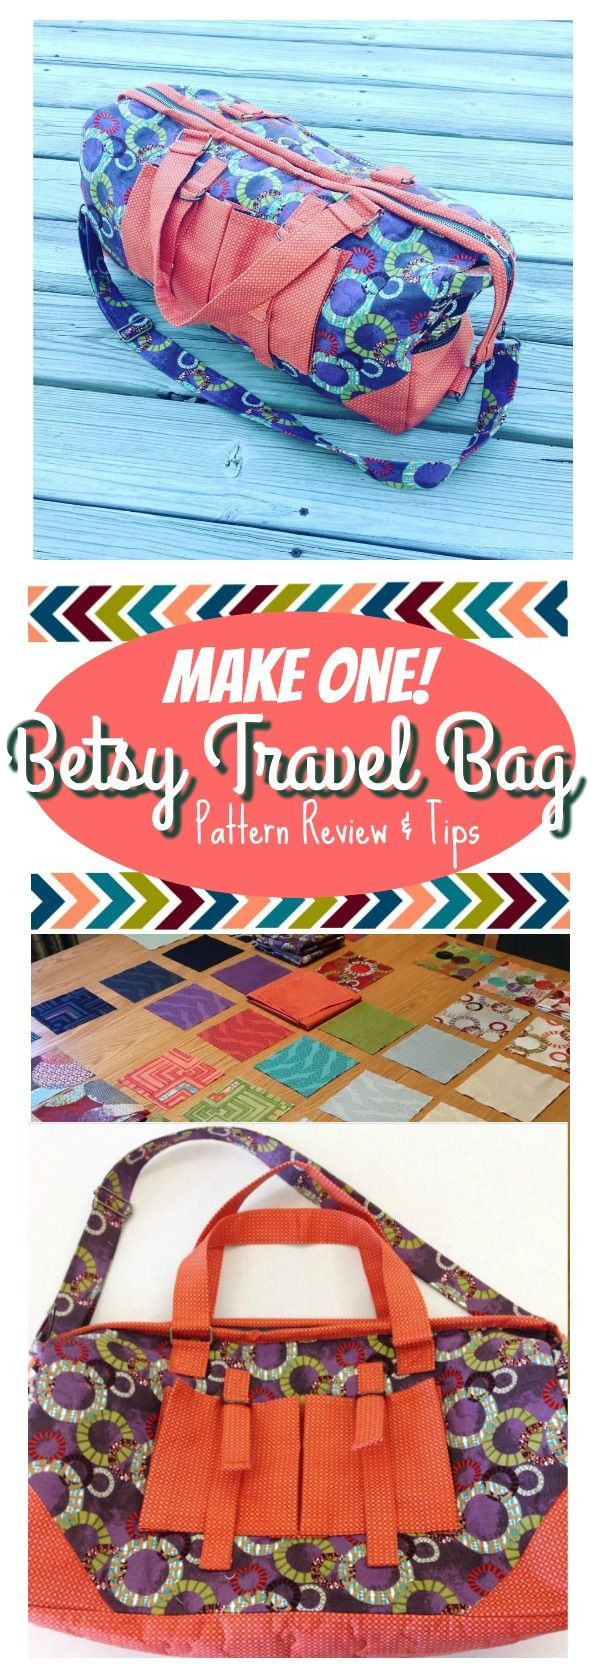 I made the Betsy Travel Bag and LOVED it! This is the perfect duffle bag for a weekend get-away! Check out the website for tips and tricks!